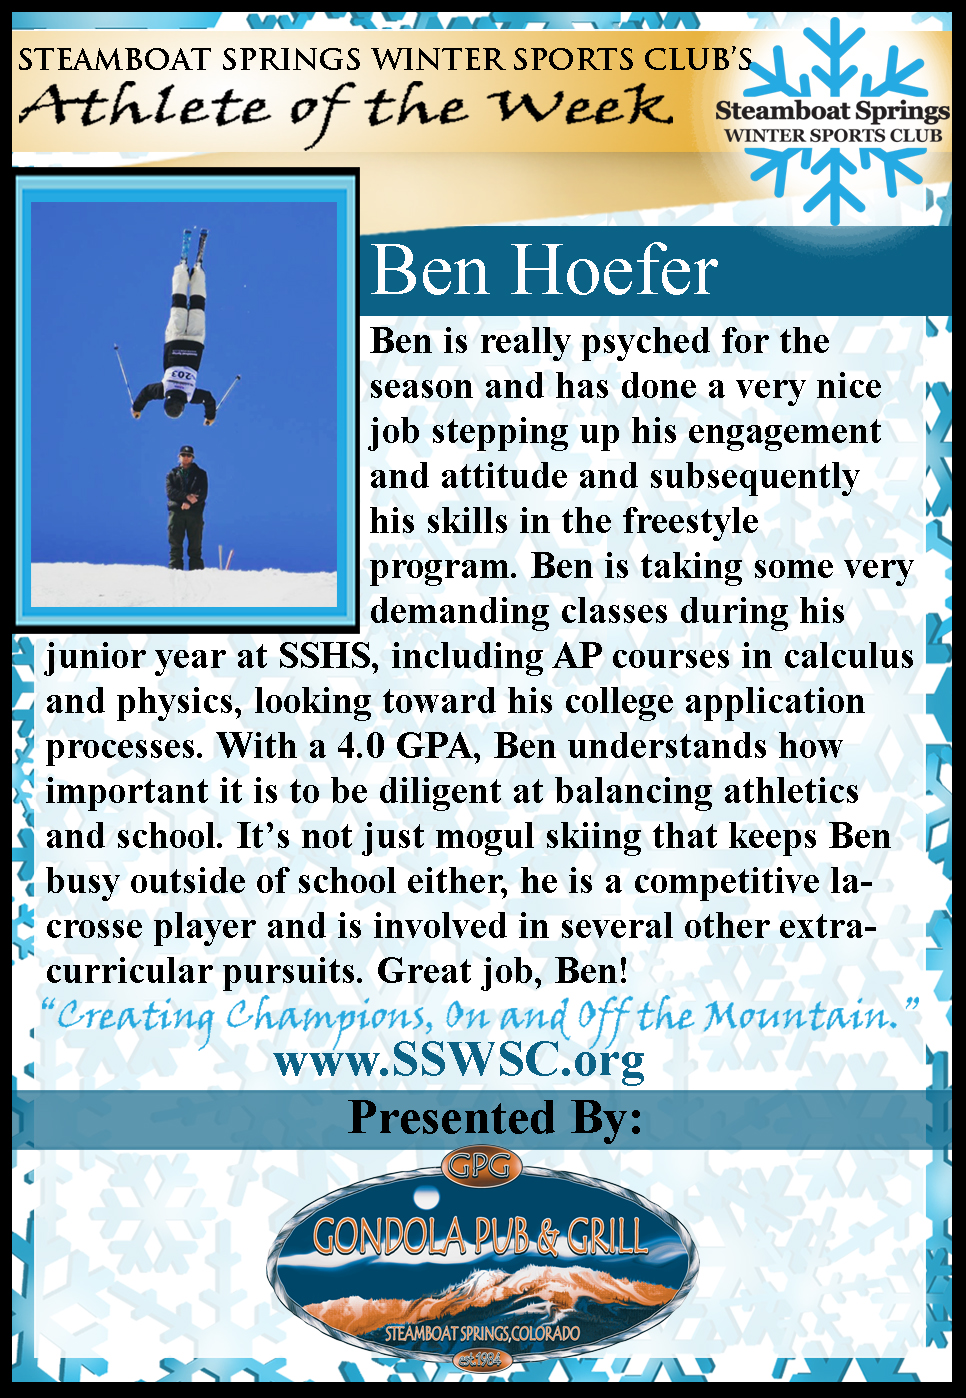 Athlete of the Week Ben Hoefner